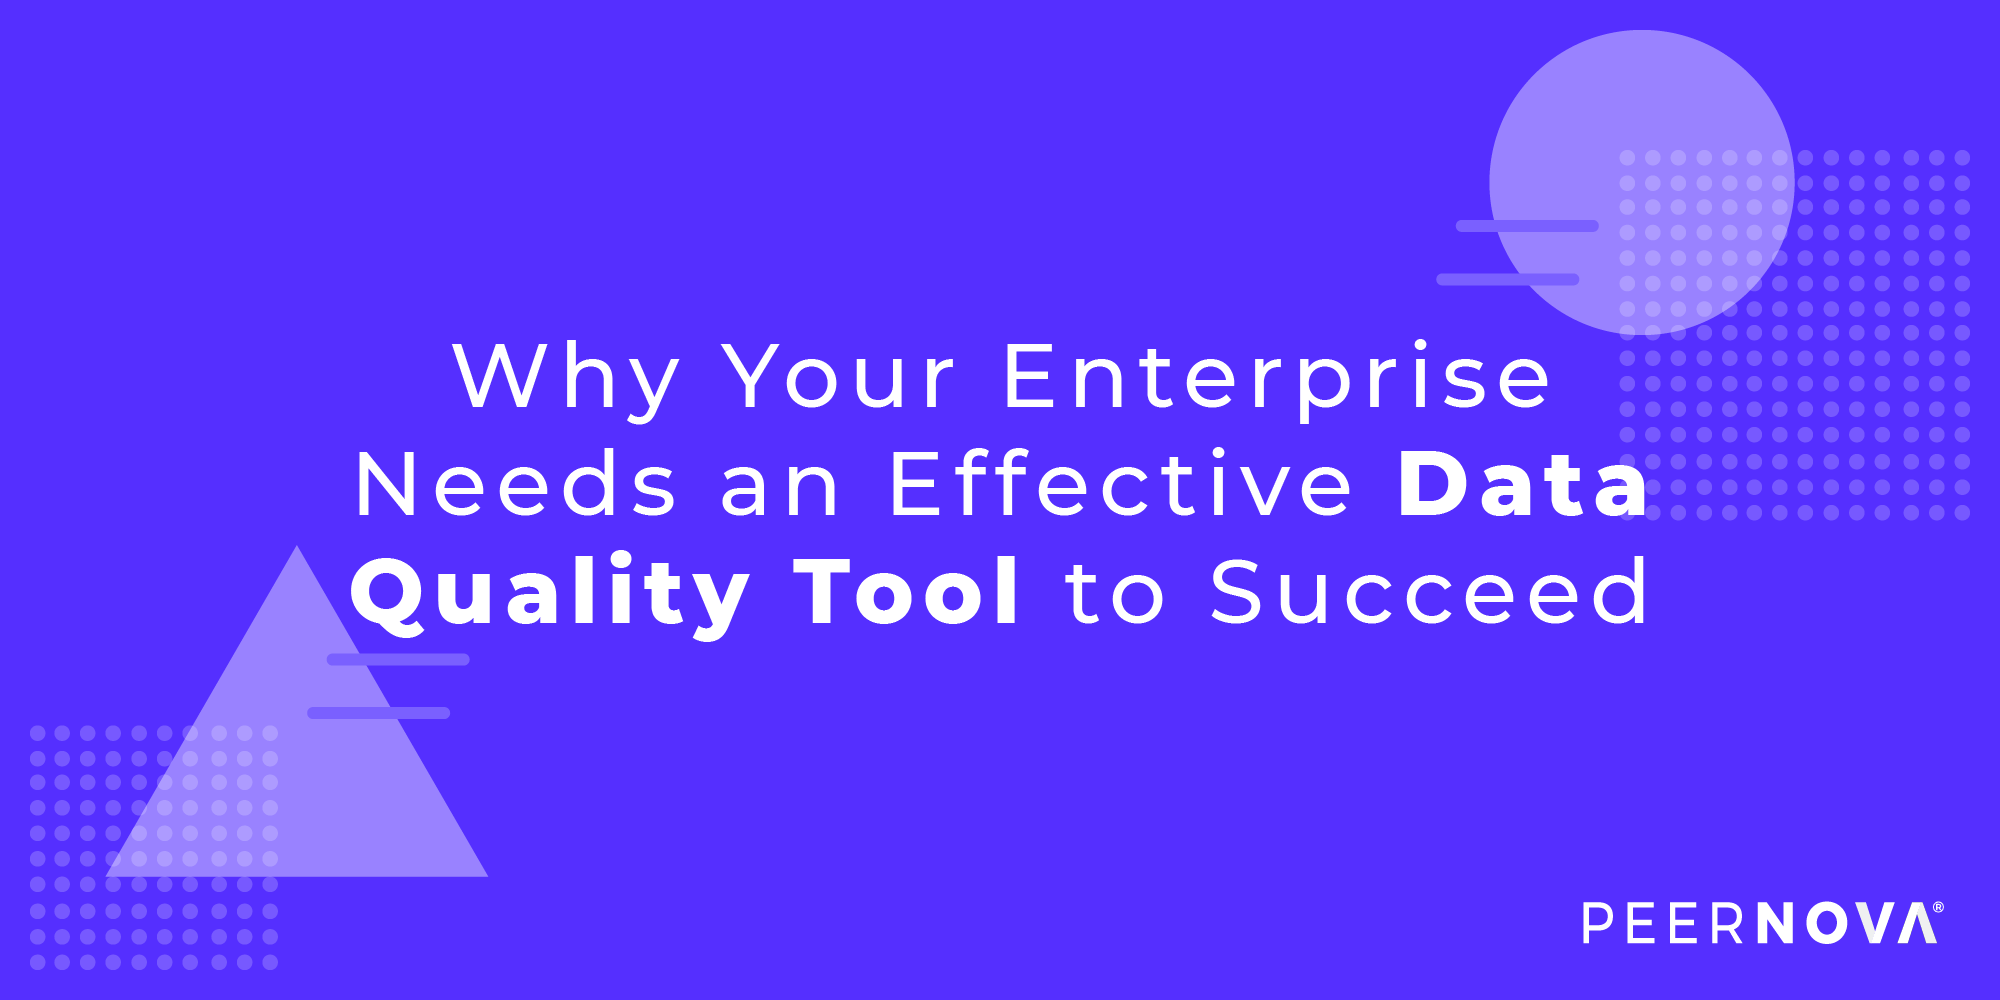 Why Your Enterprise Needs an Effective Data Quality Tool to Suceed